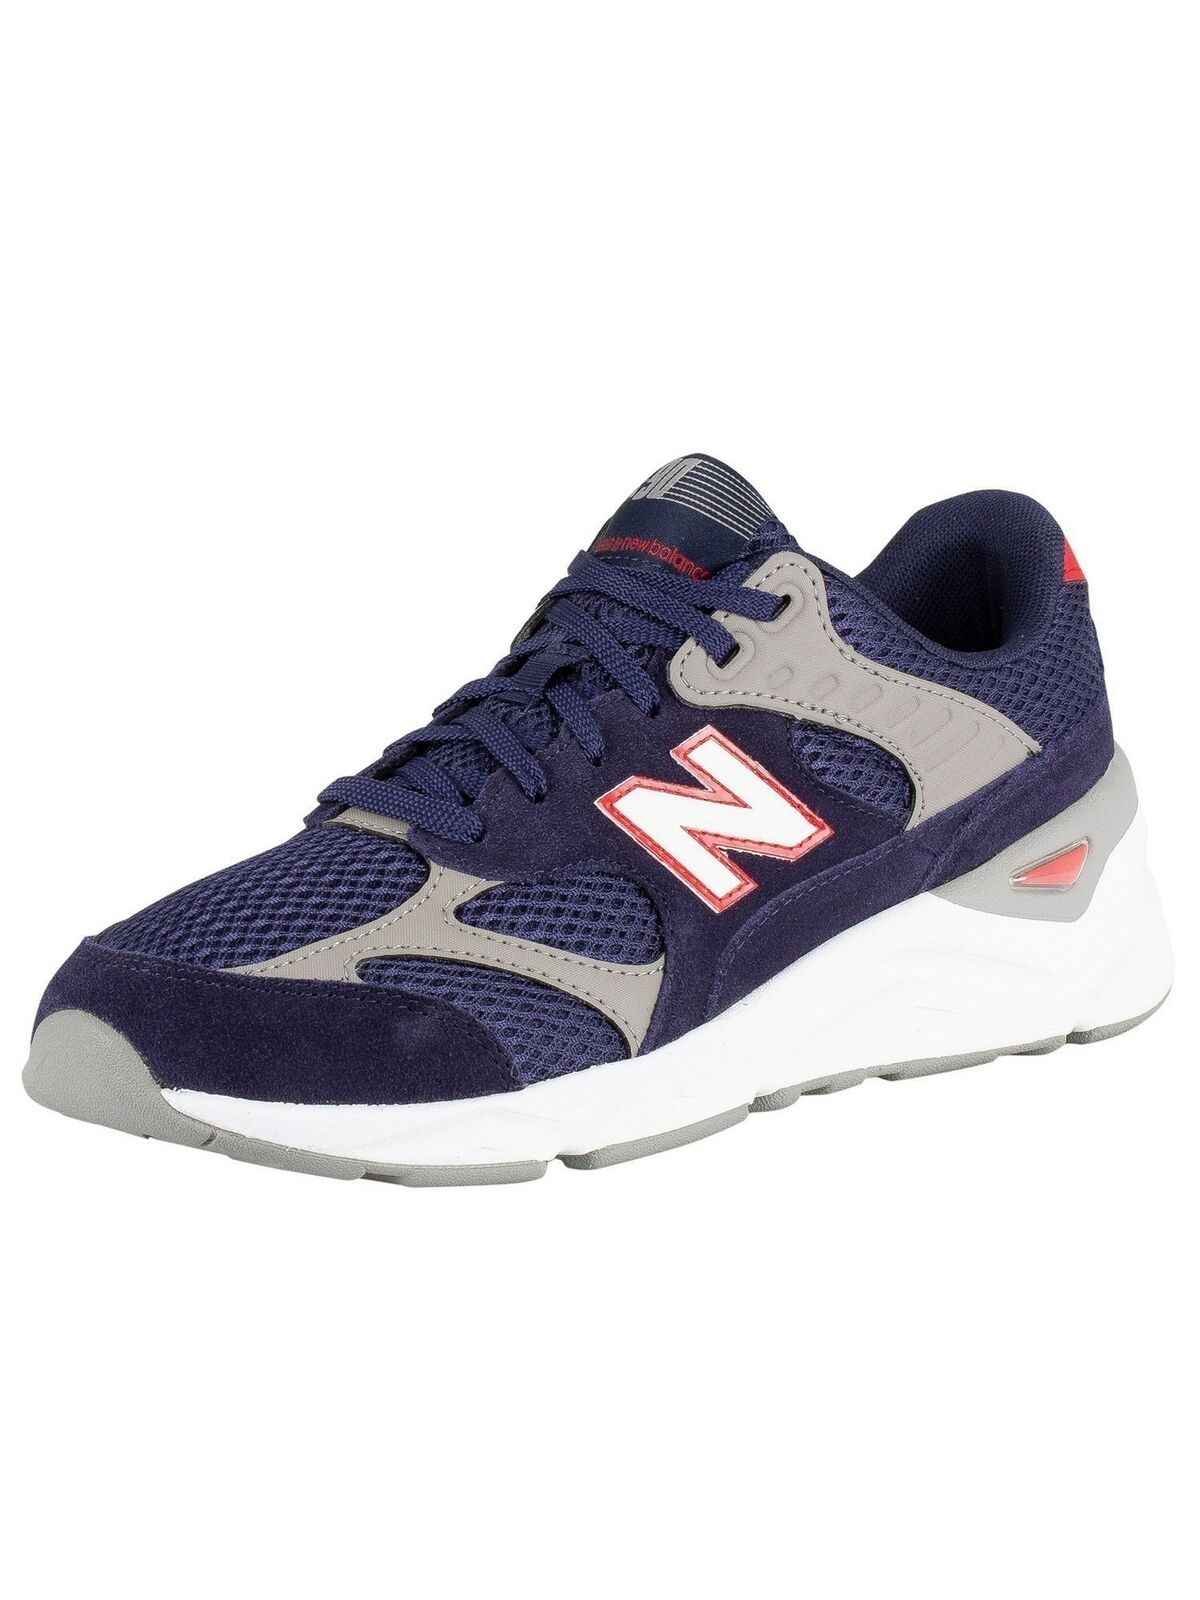 New Balance Men's X-90 Suede Trainers, bluee